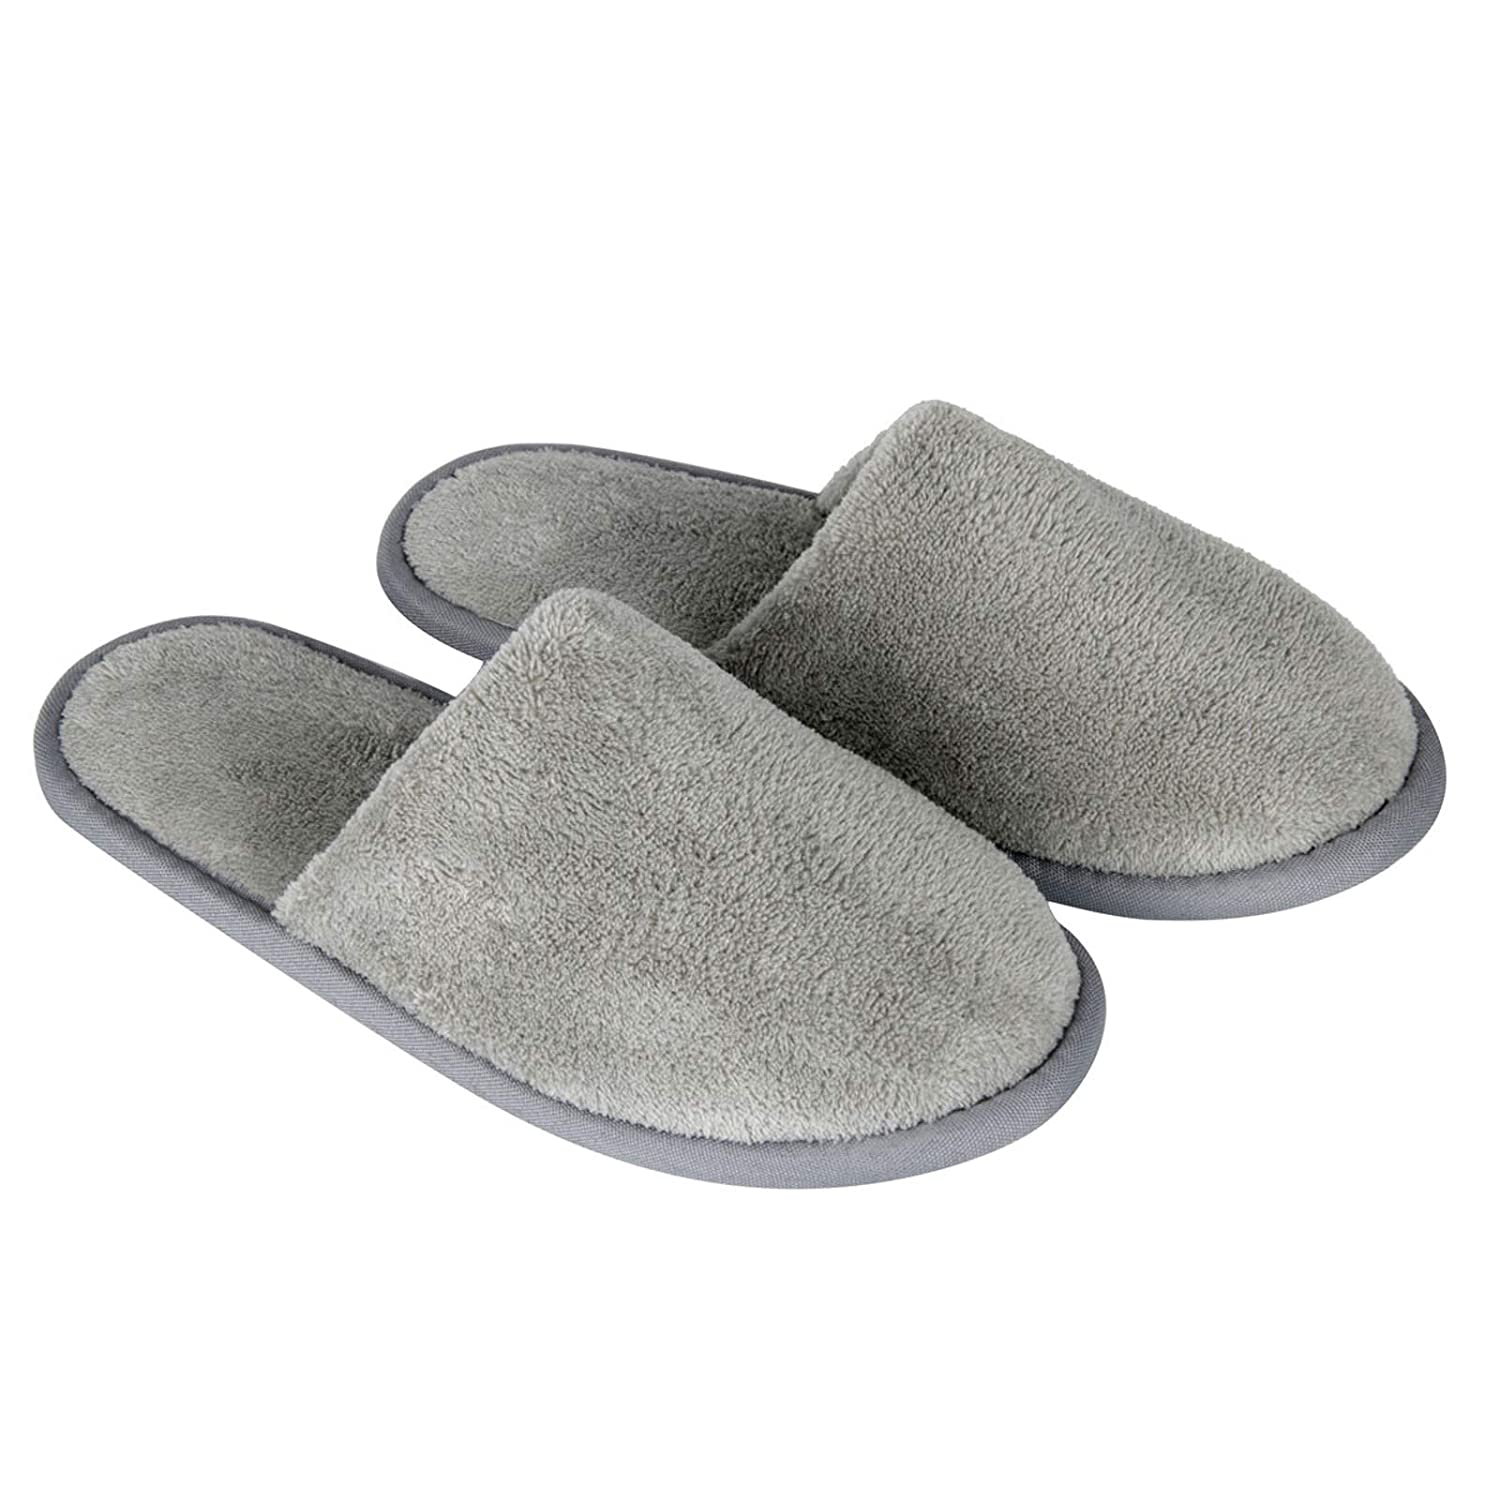 20 Pairs of Hotel Slippers House Shoes Disposable Slipper Hotel Slippers Slippers Faro